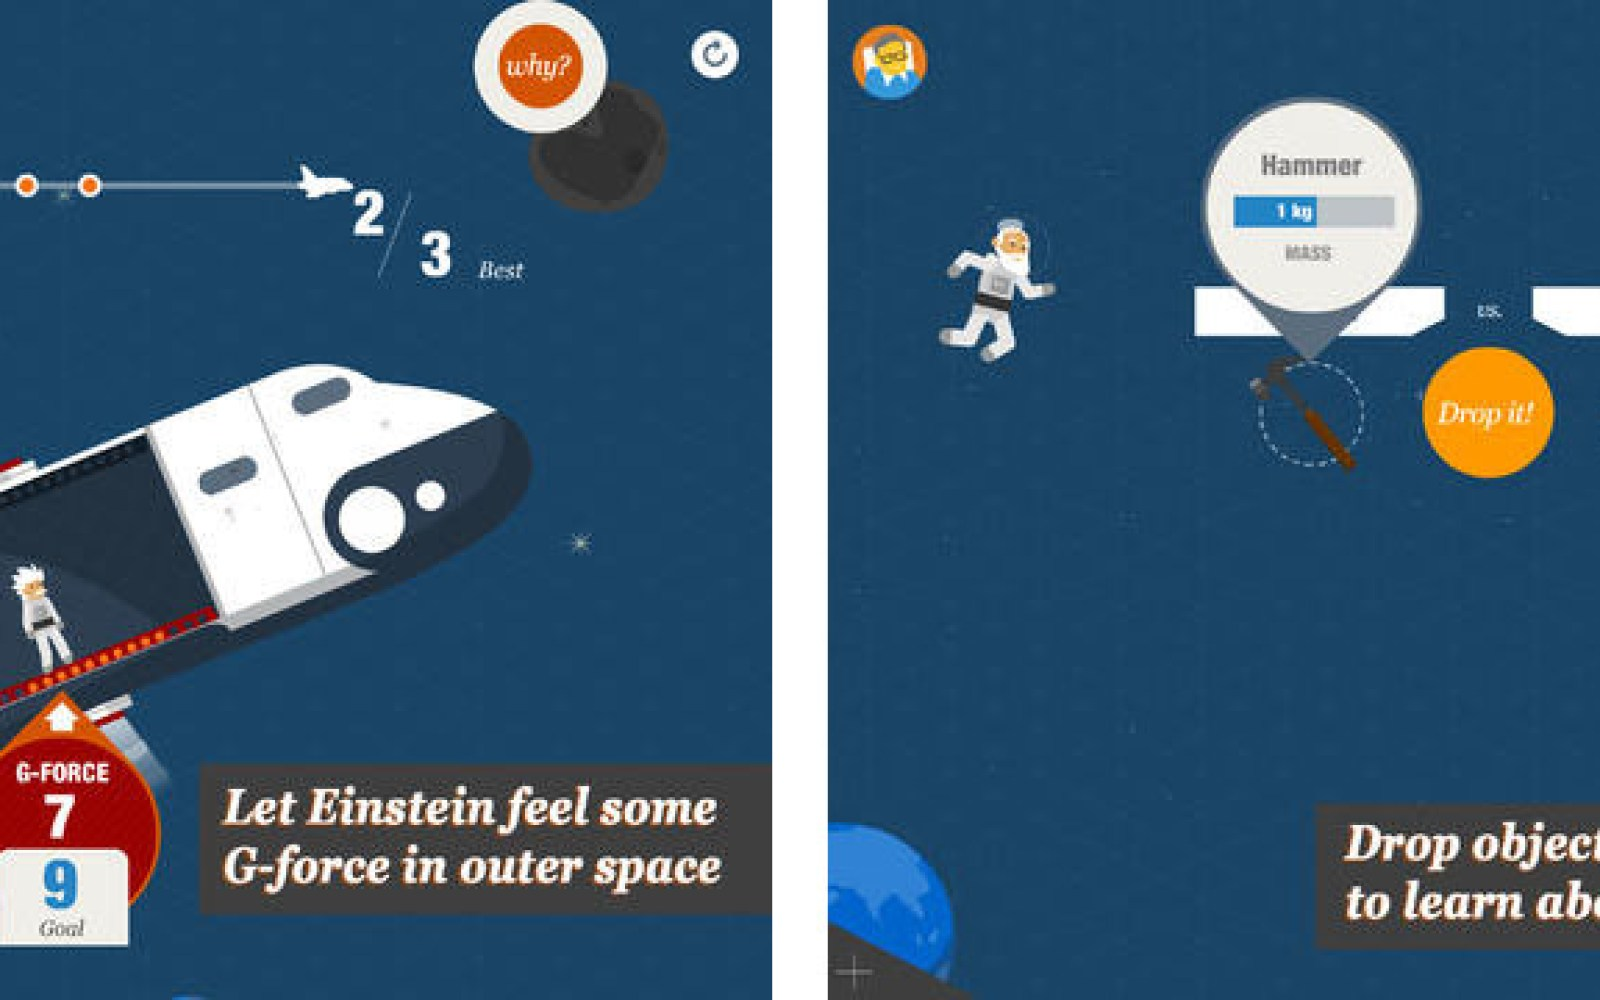 Stephen Hawking iPad app provides a fun way to teach kids about physics